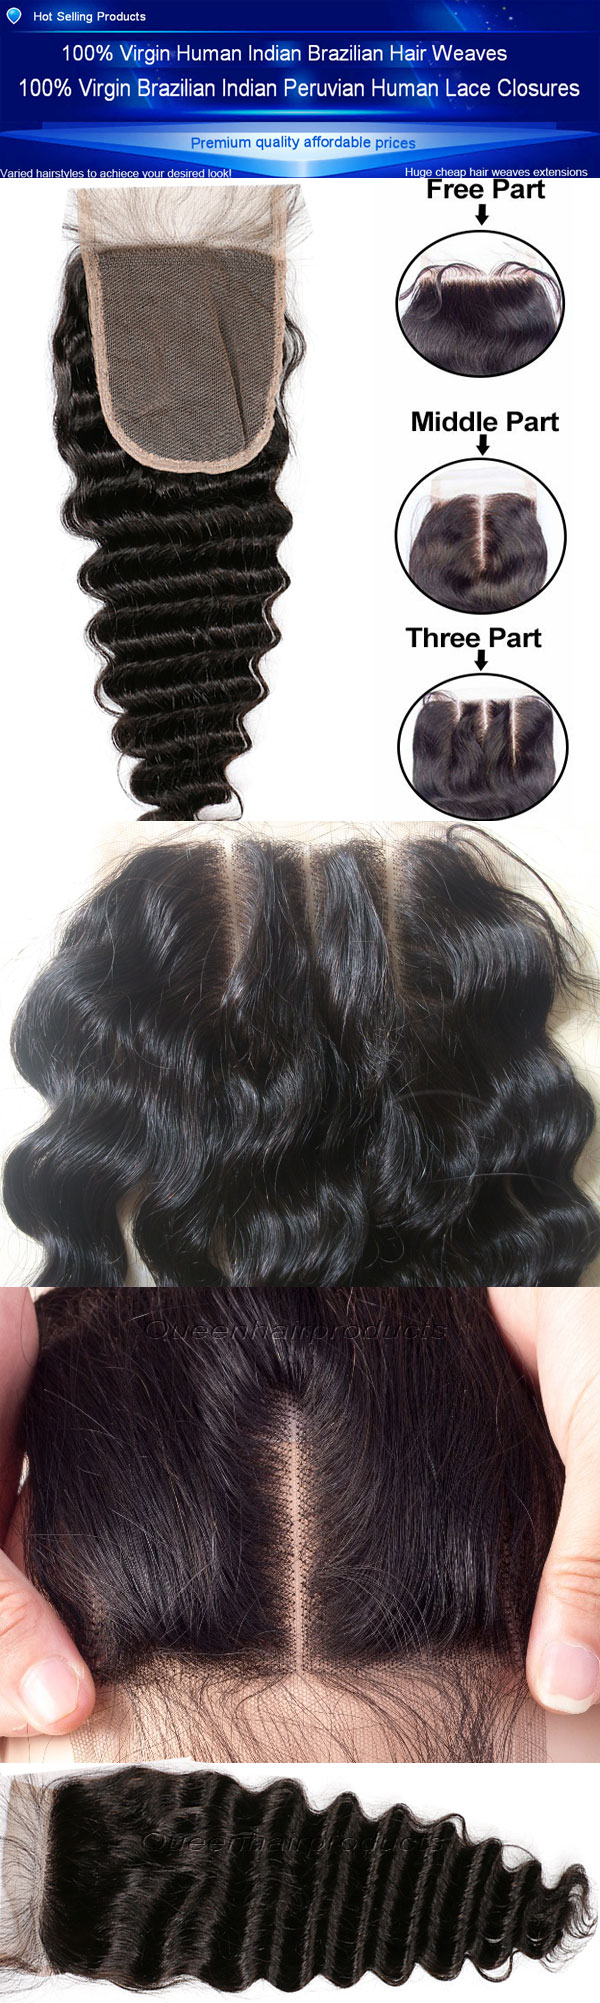 How To Minimize Shedding Of Human Hair Lace Closures